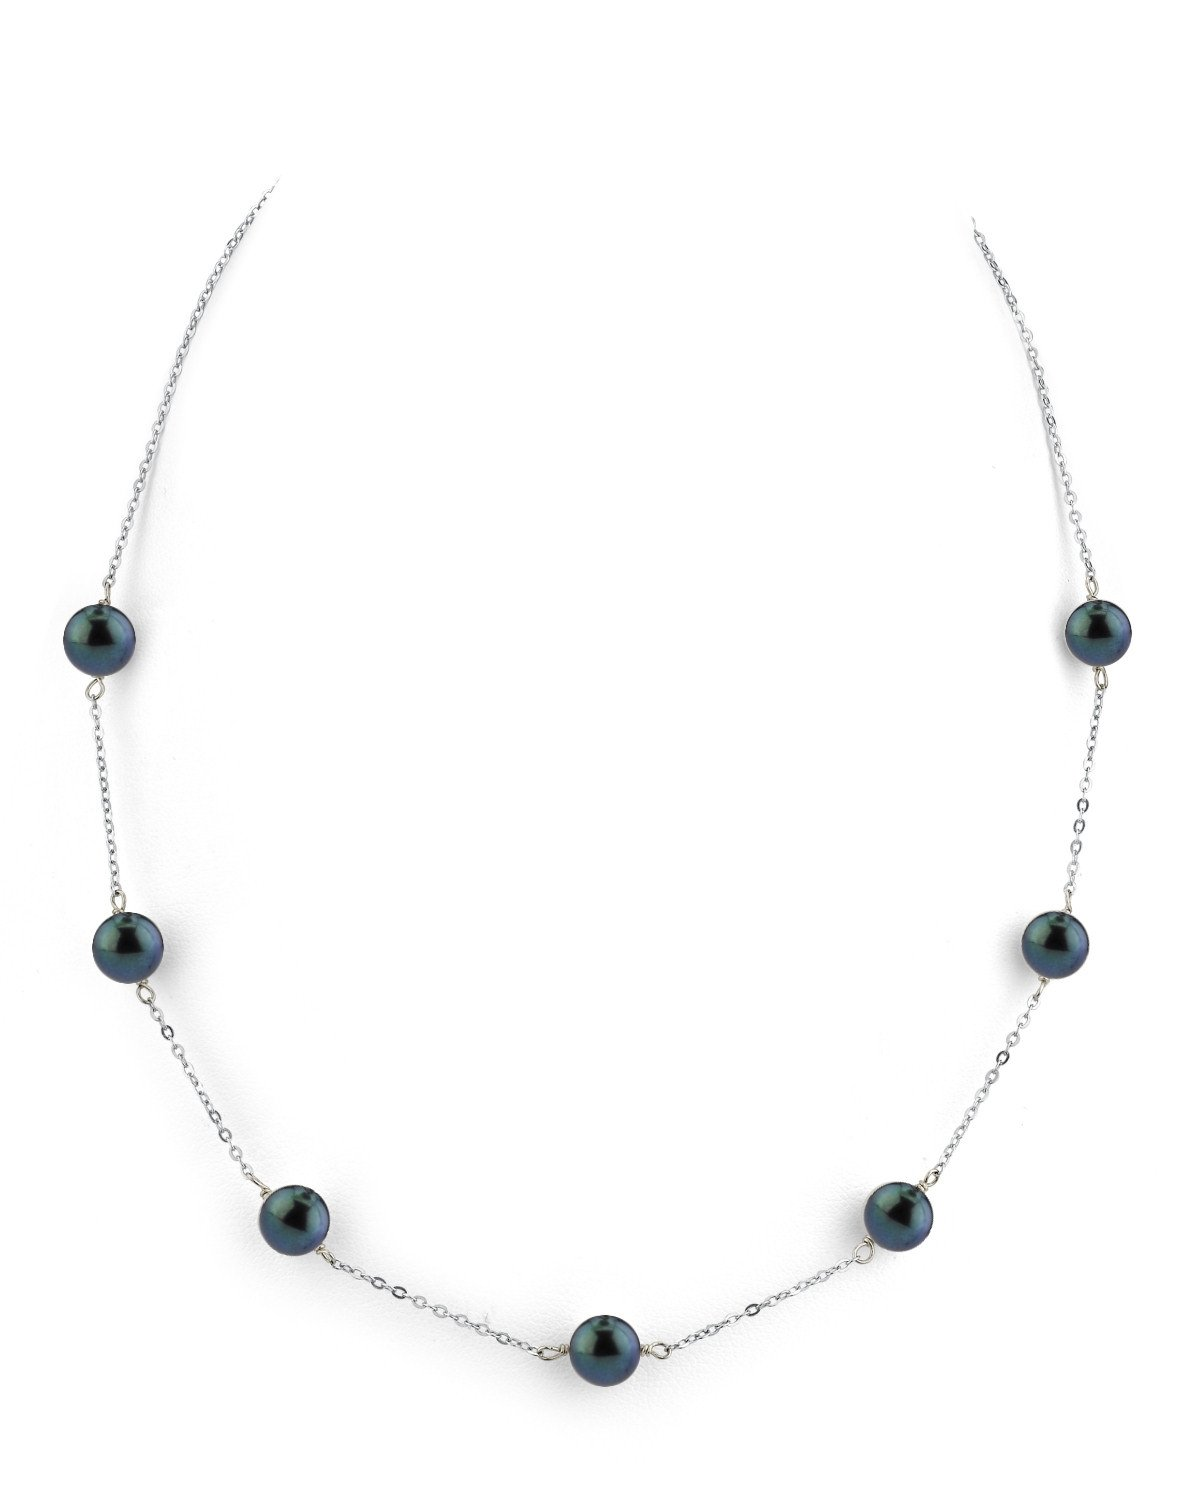 14K Gold 7.0-7.5mm Black Akoya Cultured Pearl Tincup Necklace